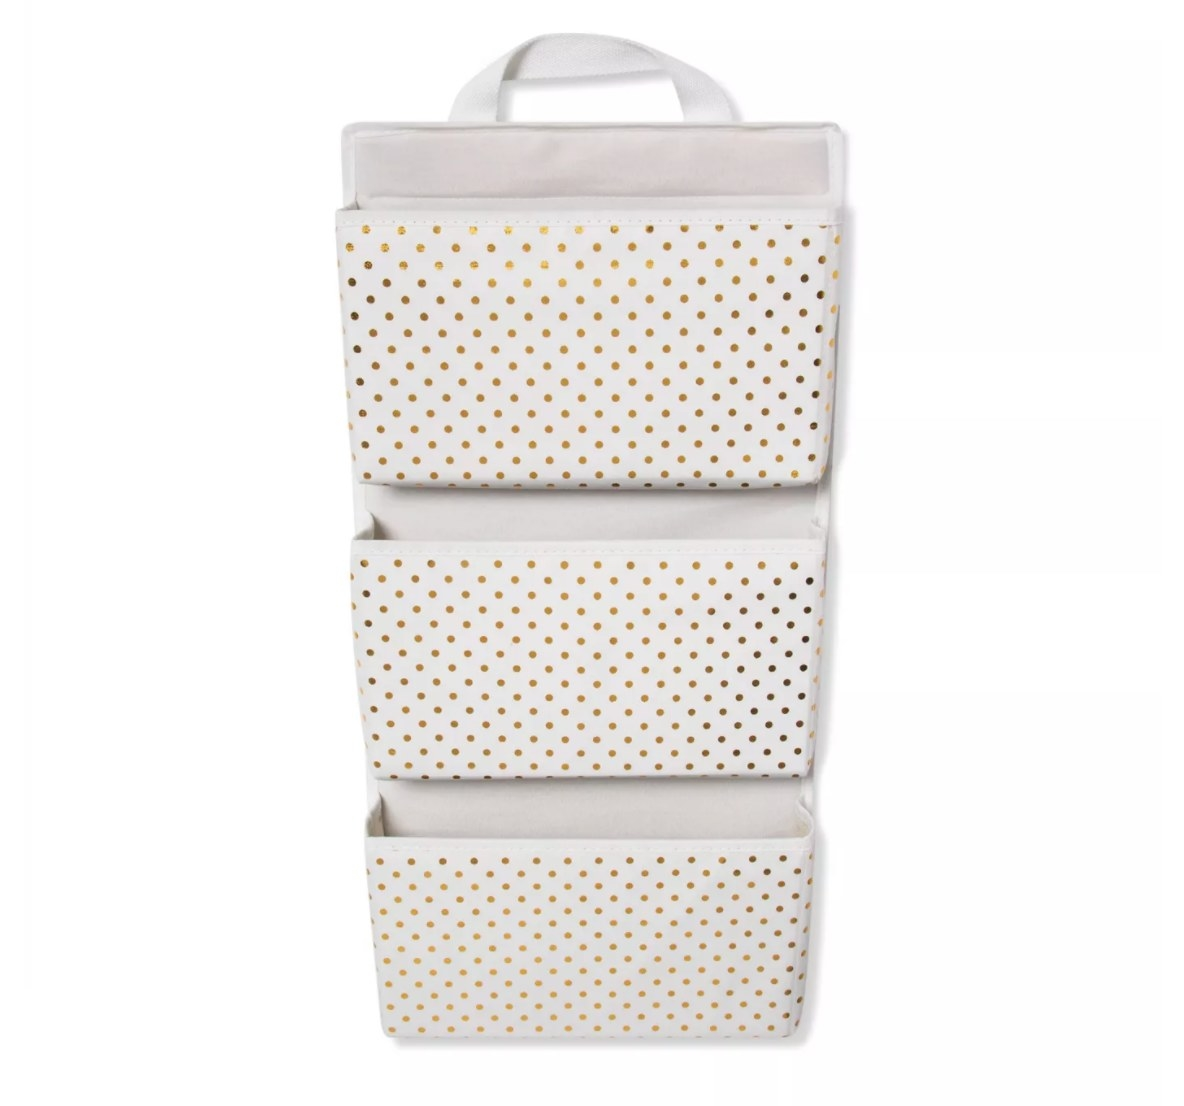 A three-pocket vertical hanging organizer with gold polka dots on white